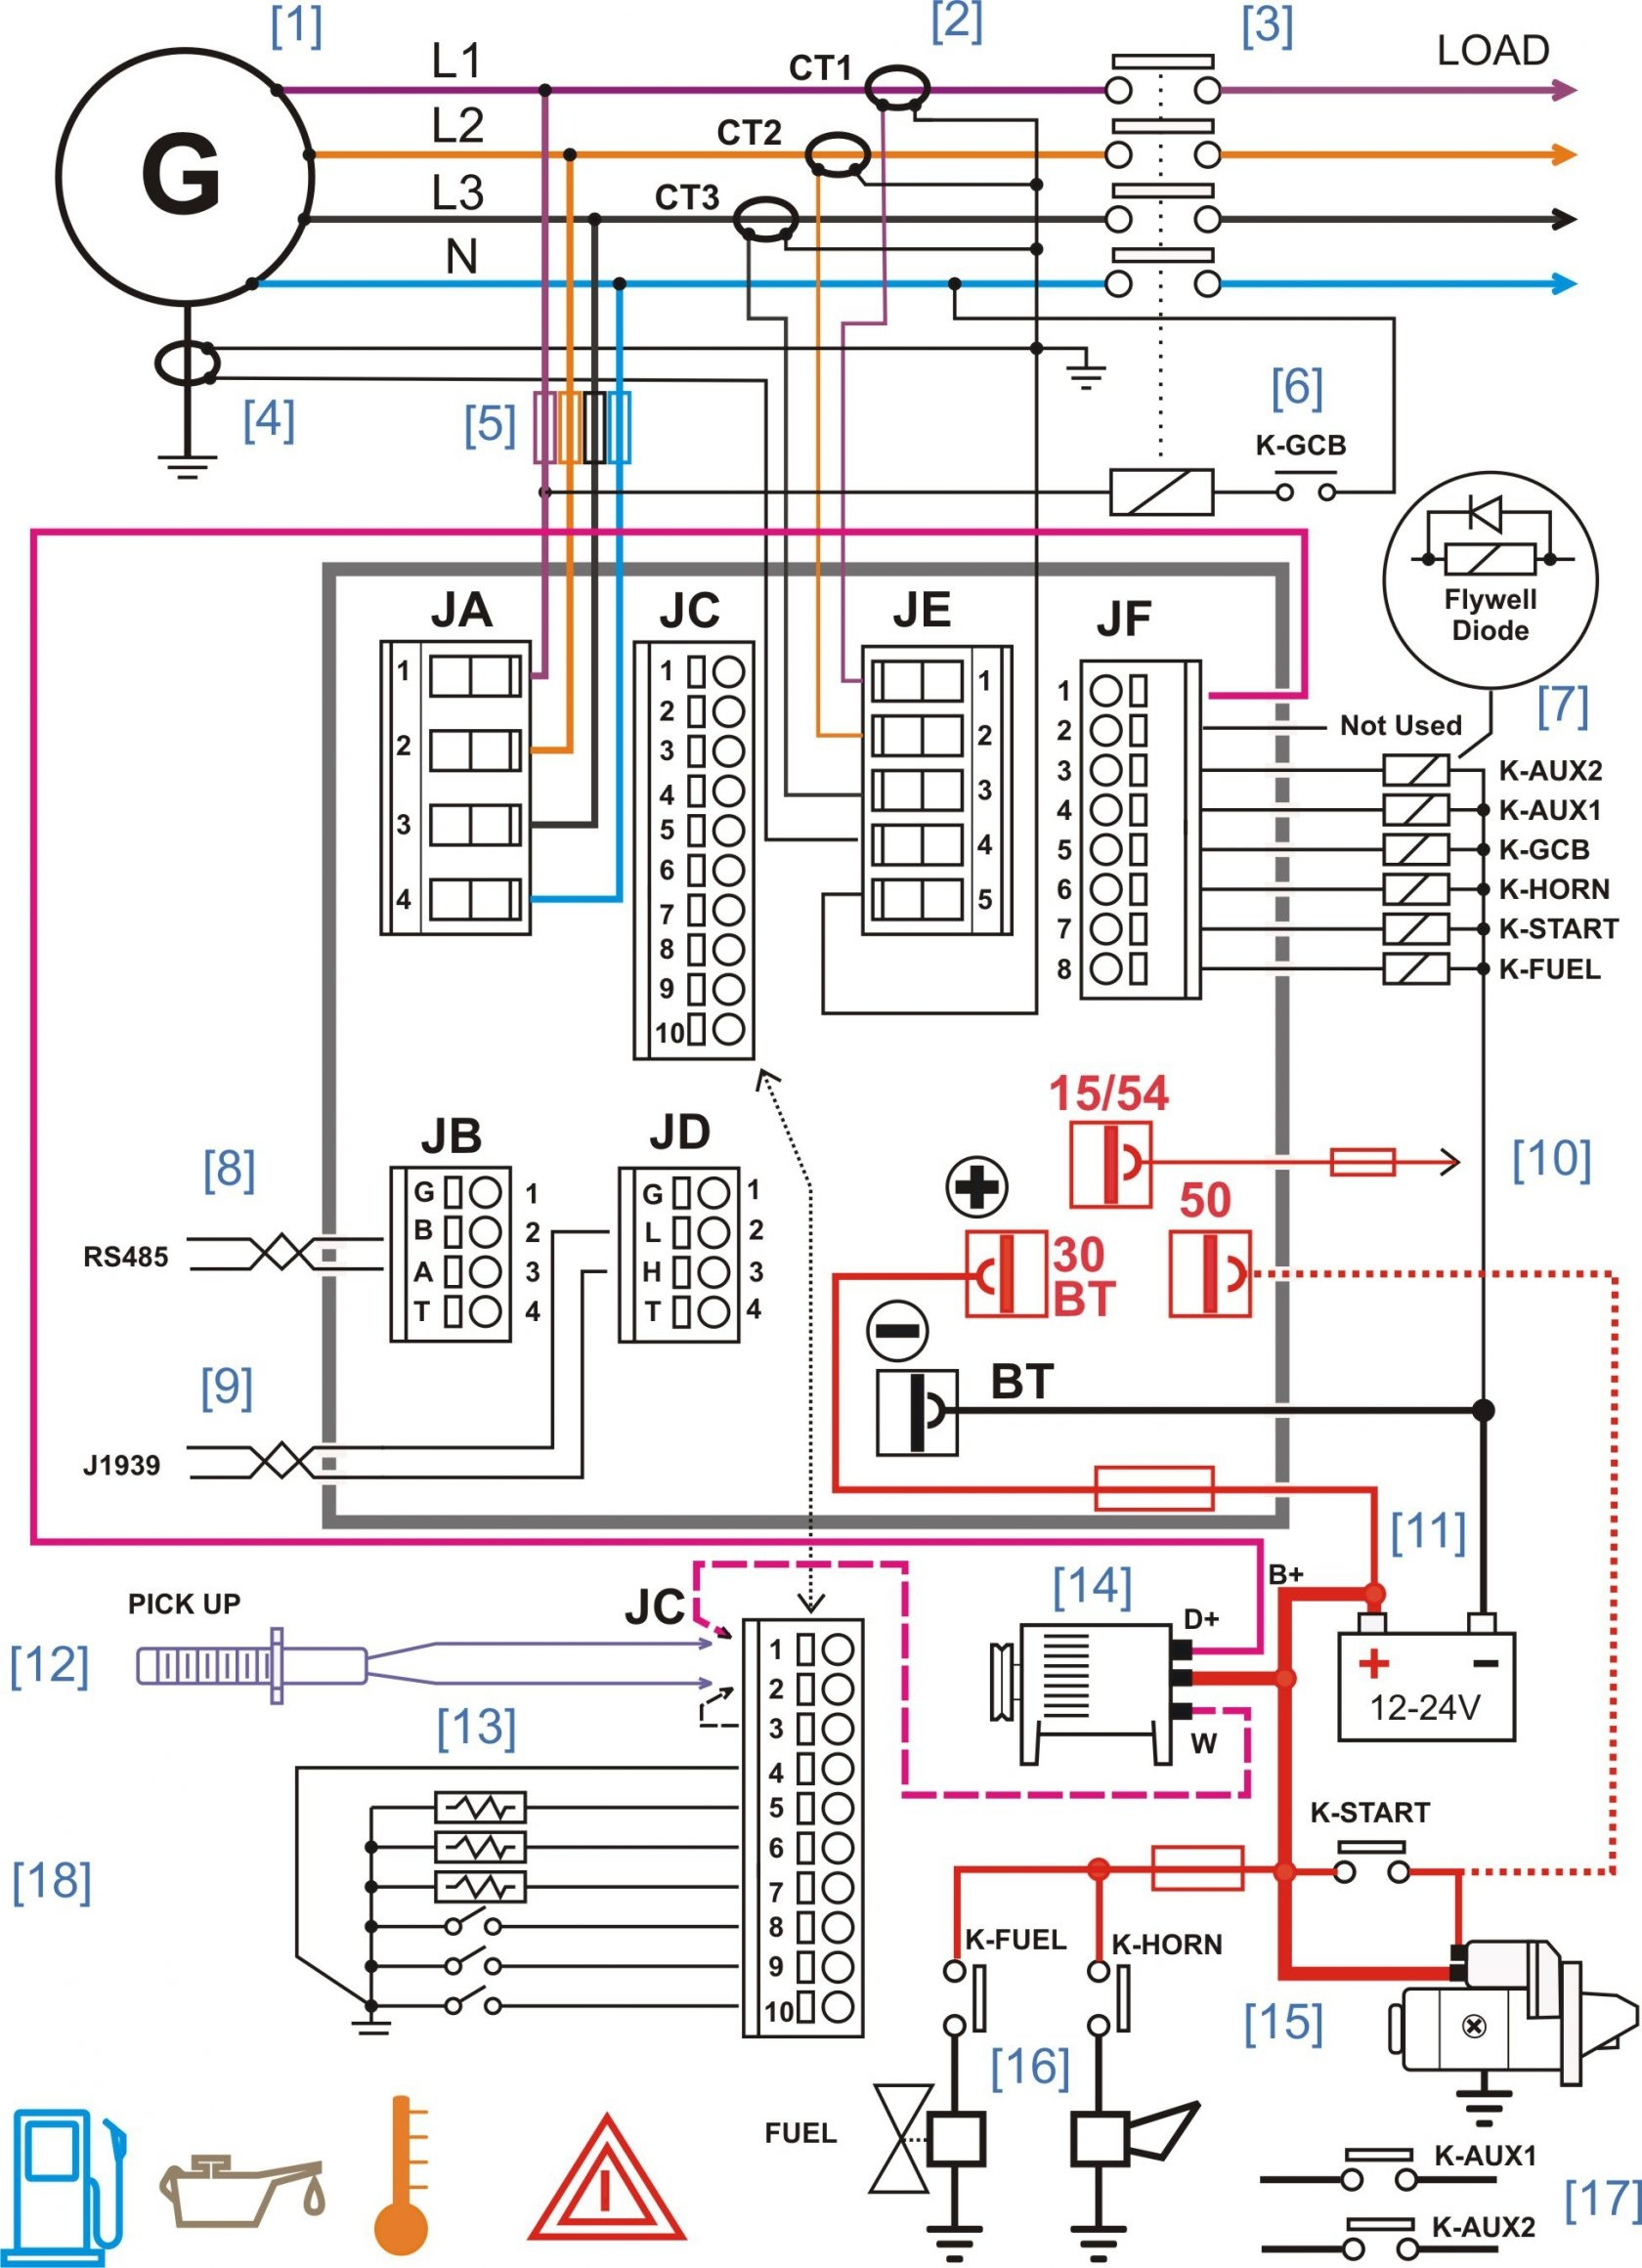 delco bose gold series wiring diagram Download-Wiring Diagram for Car Audio Elegant Wiring Diagram Delco Radio 8-s